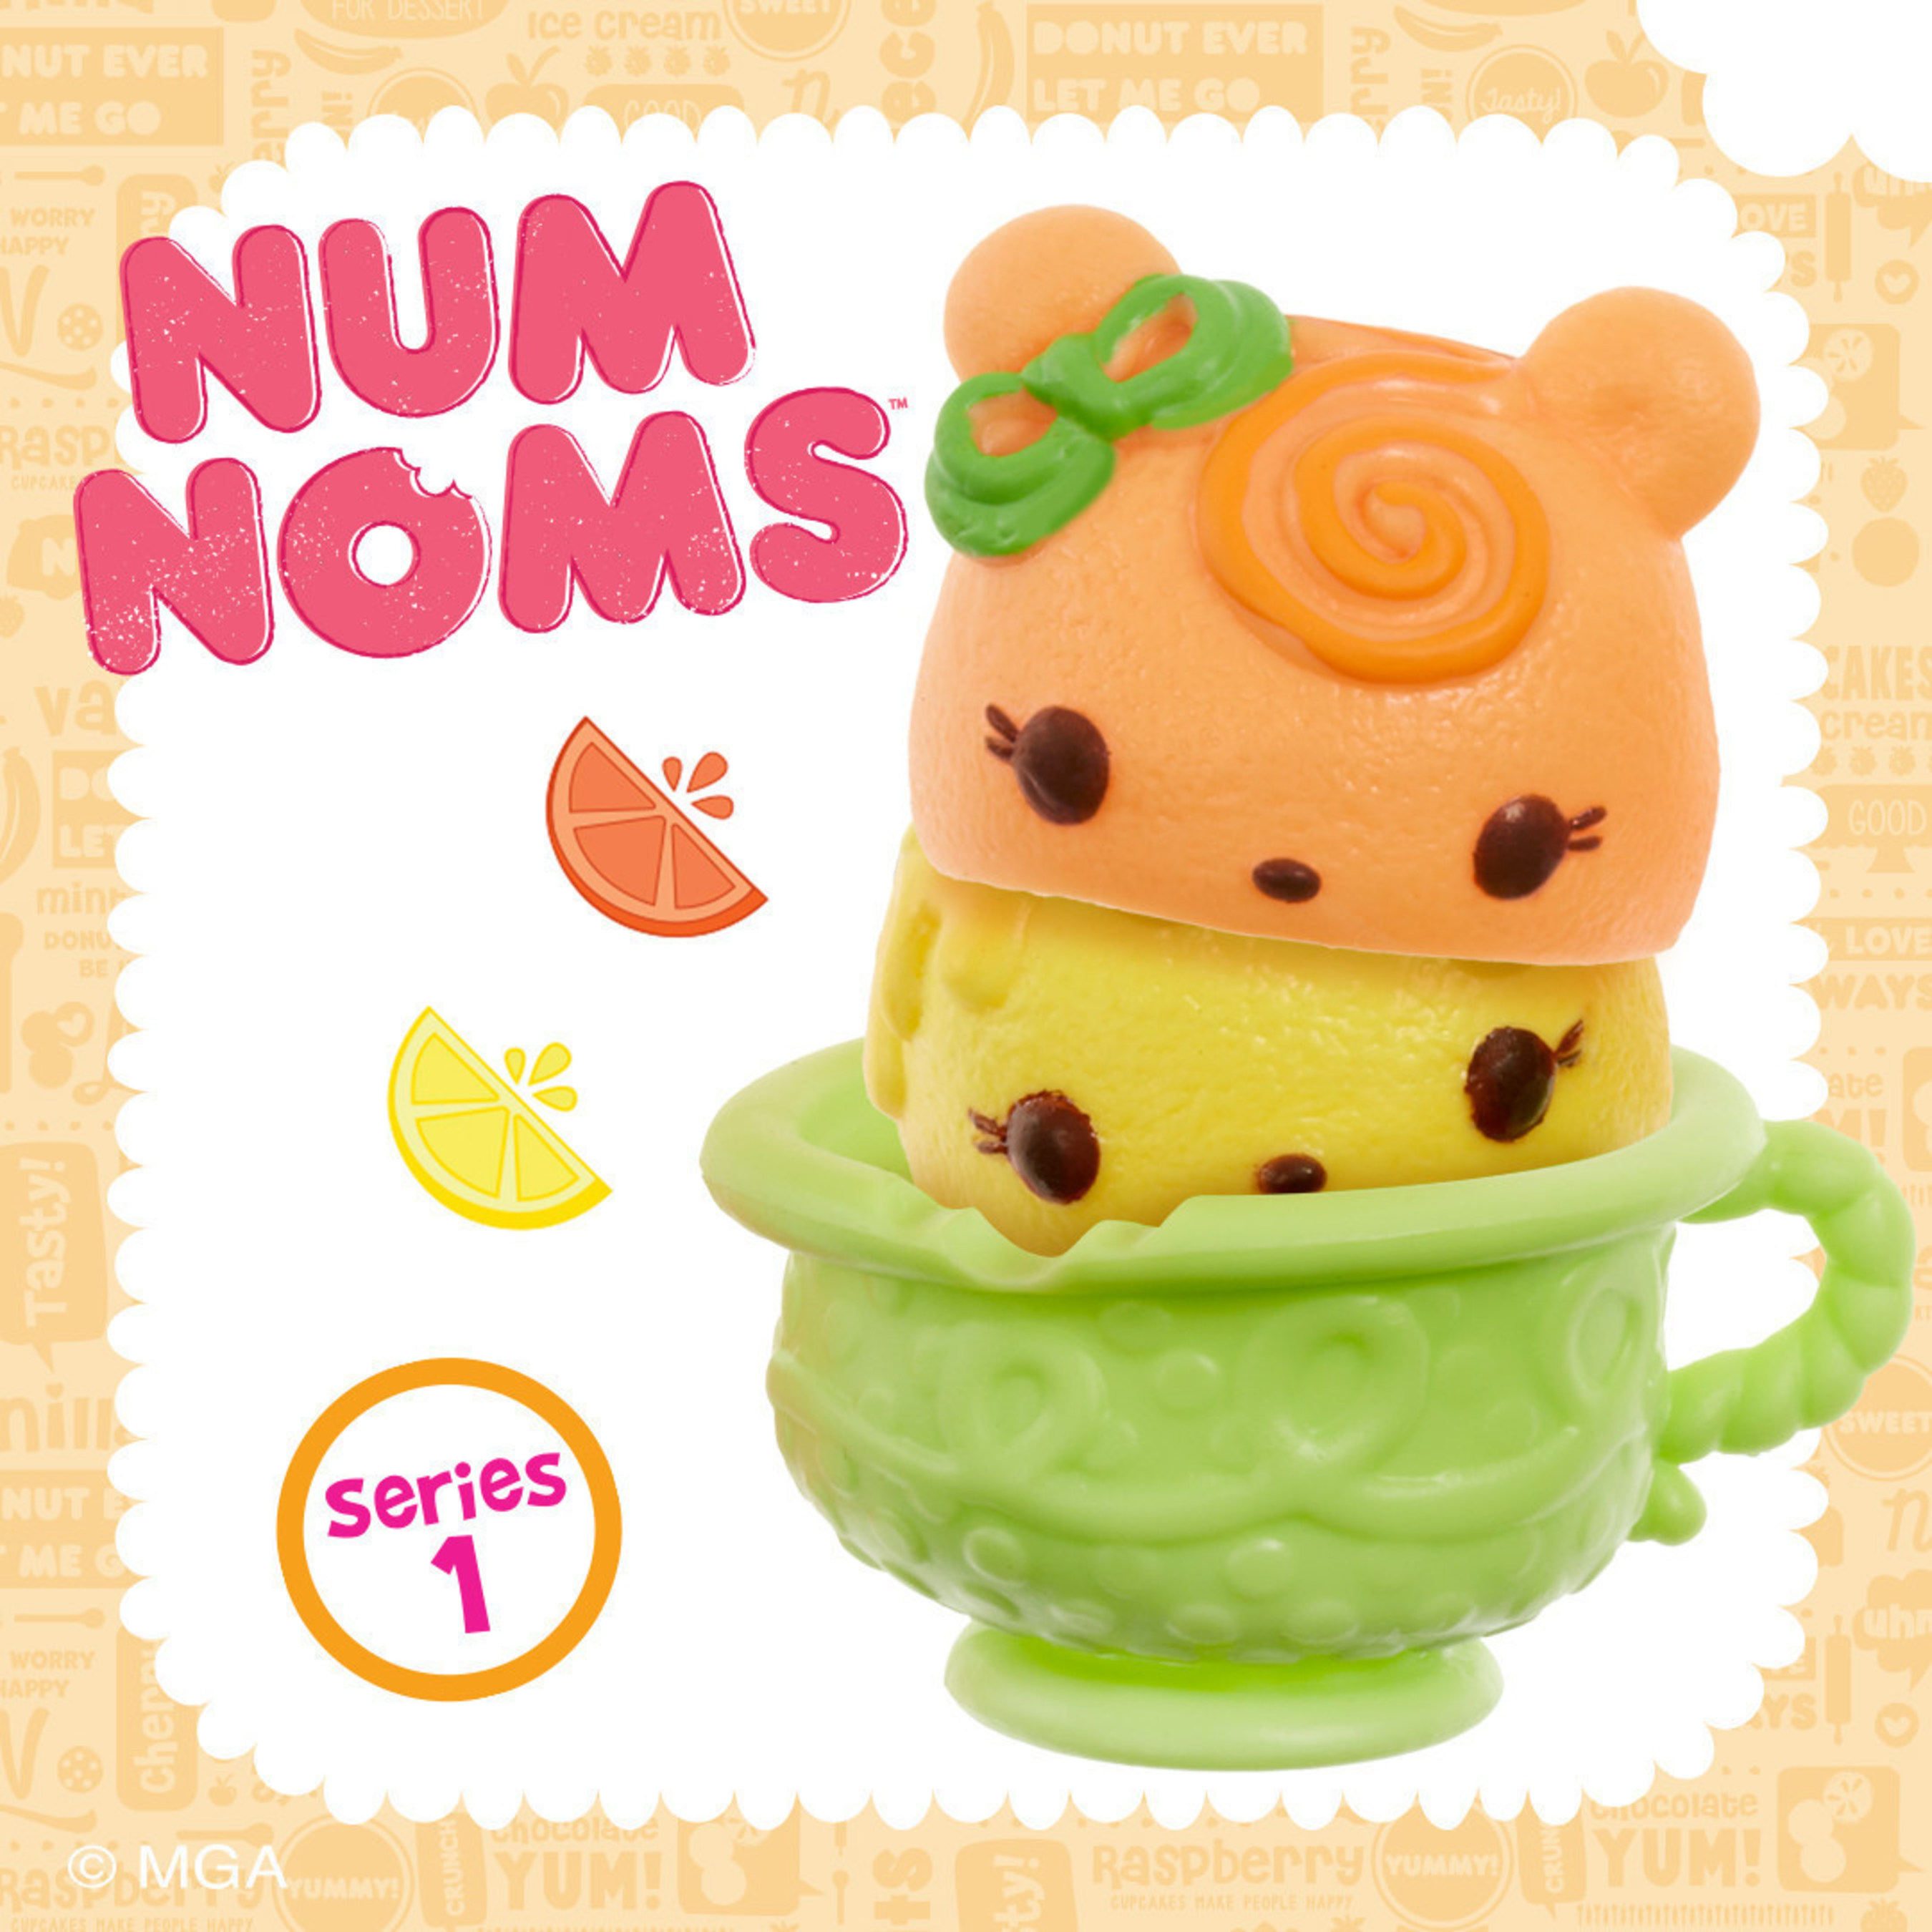 New scent-sationally collectable Num Noms are perfect stocking stuffer toys!